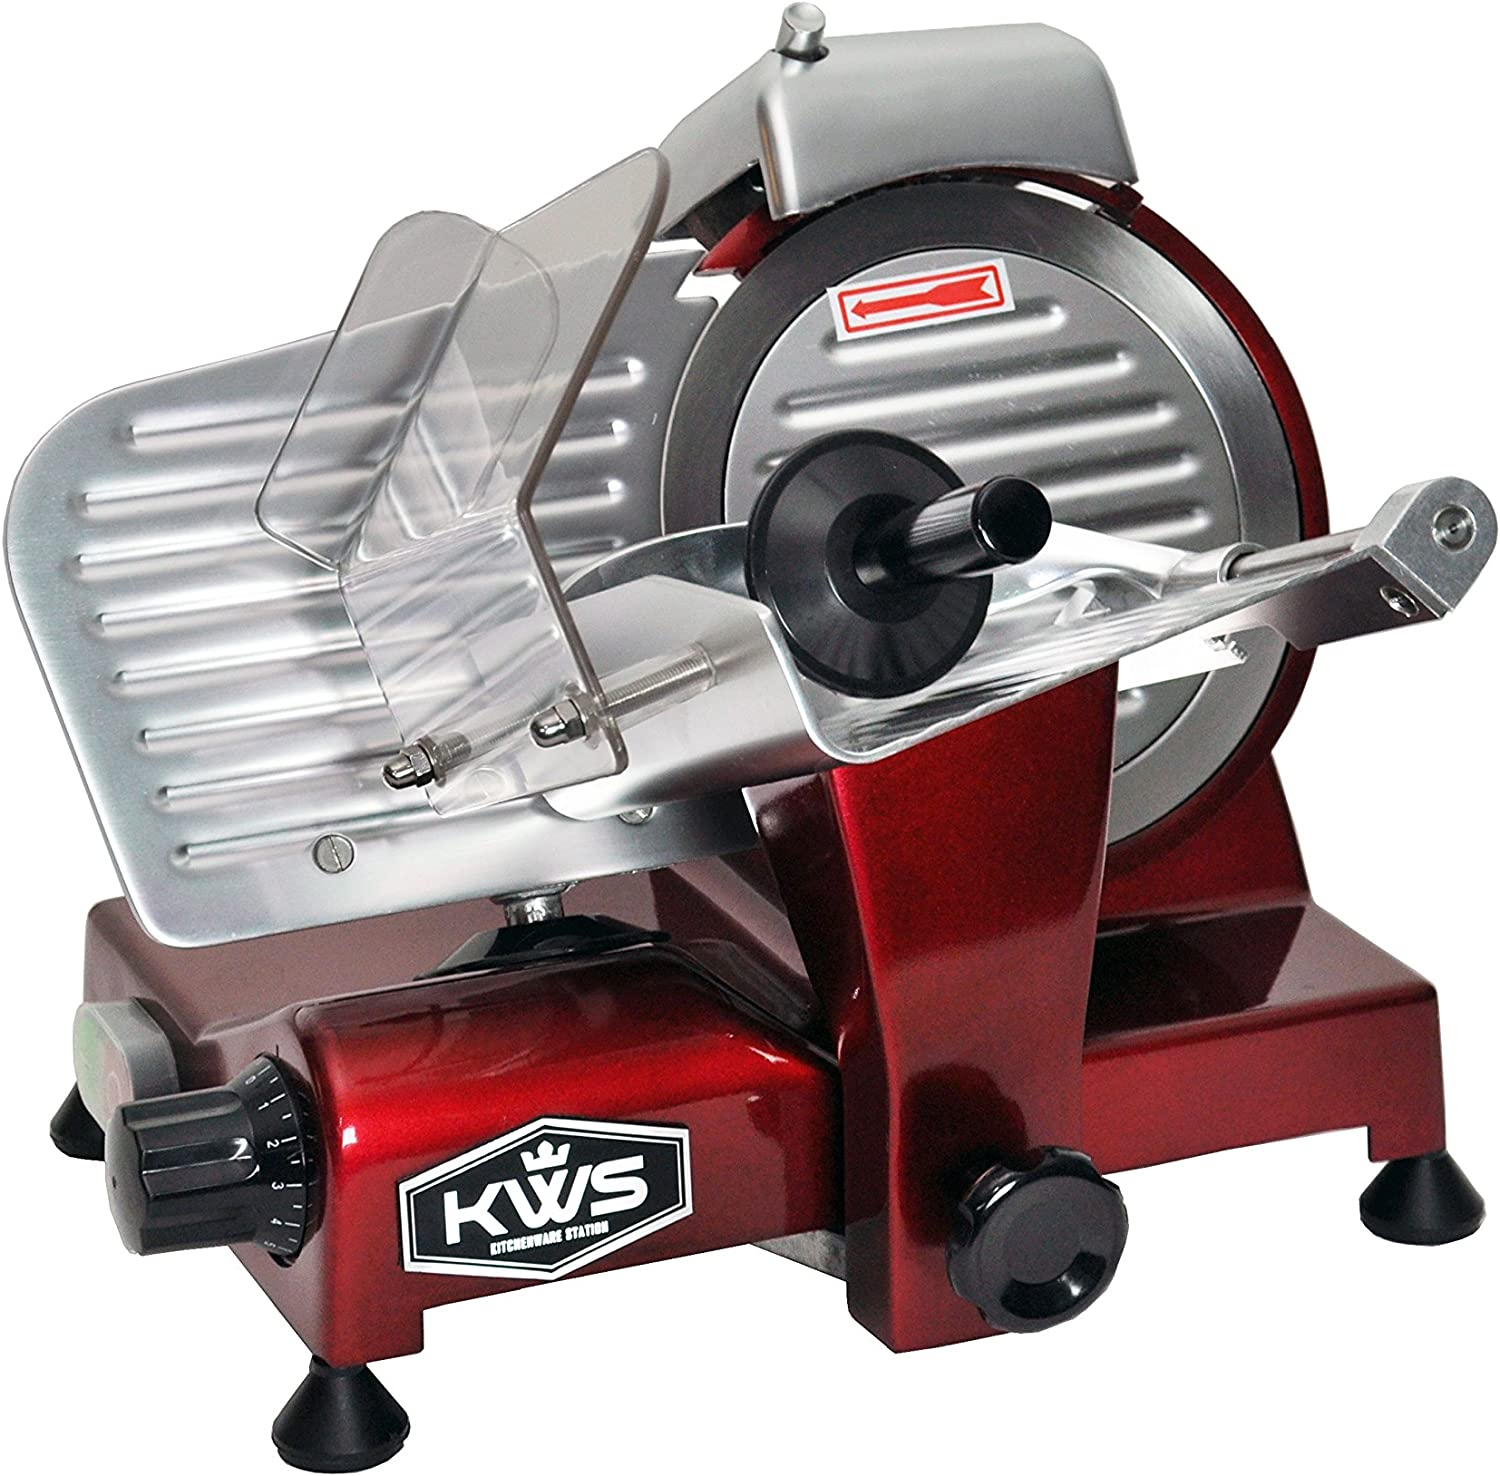 KWS MS-6RS Premium 200w Electric Meat Under blast sales 6-Inch Slicer in OFFicial shop Stain Red